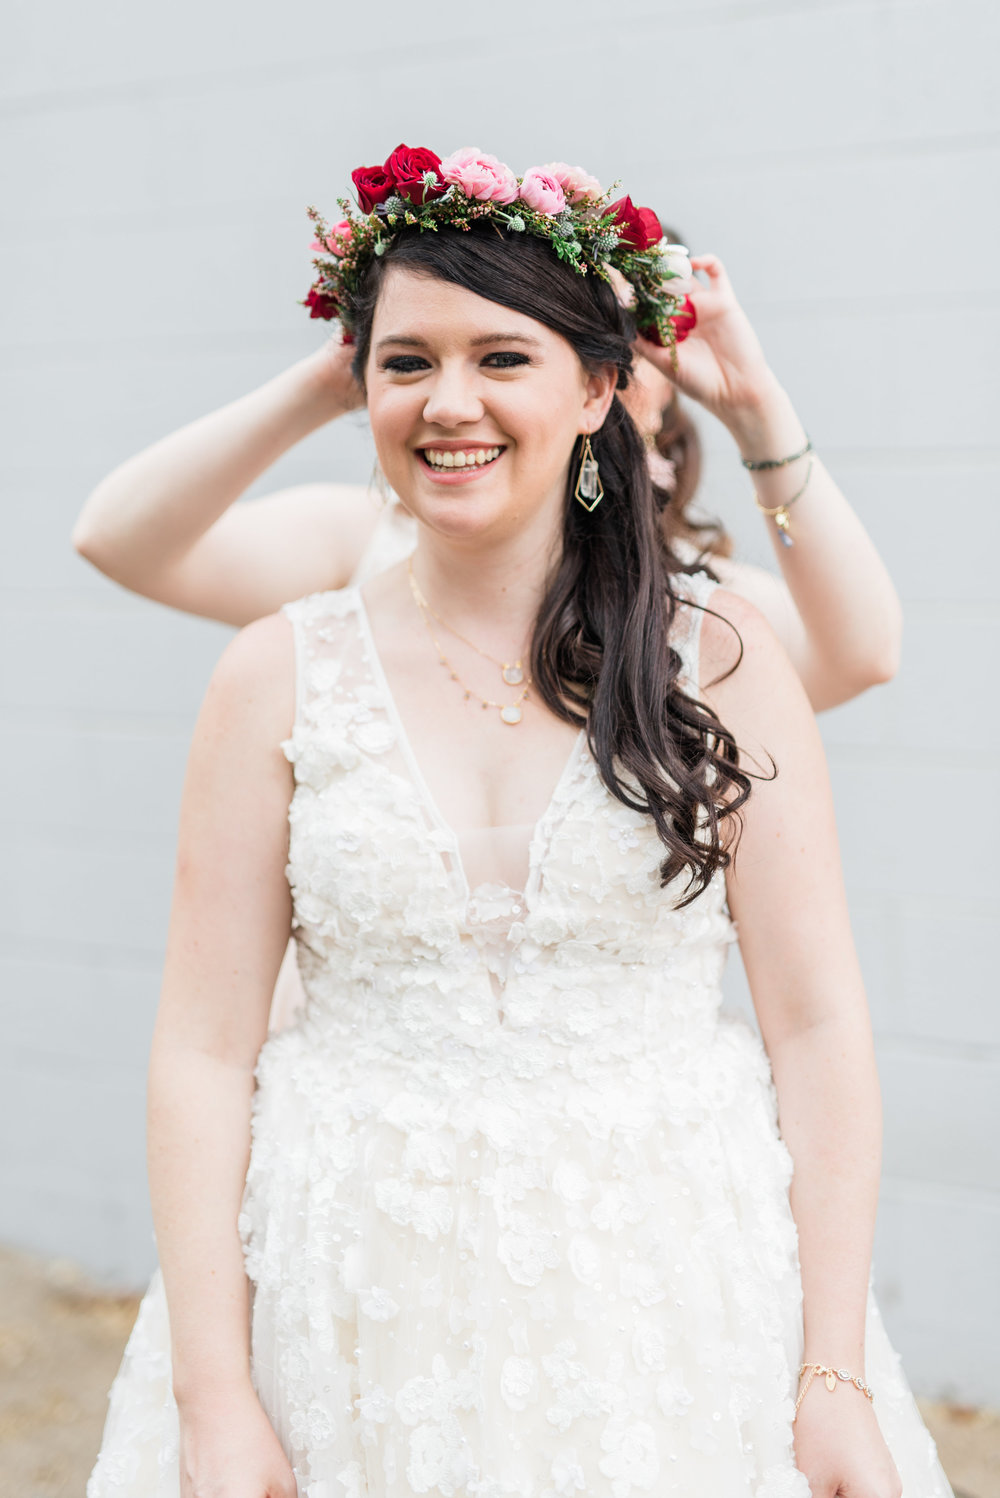 Book Inspired Wedding in Phoenix - Flower Crown